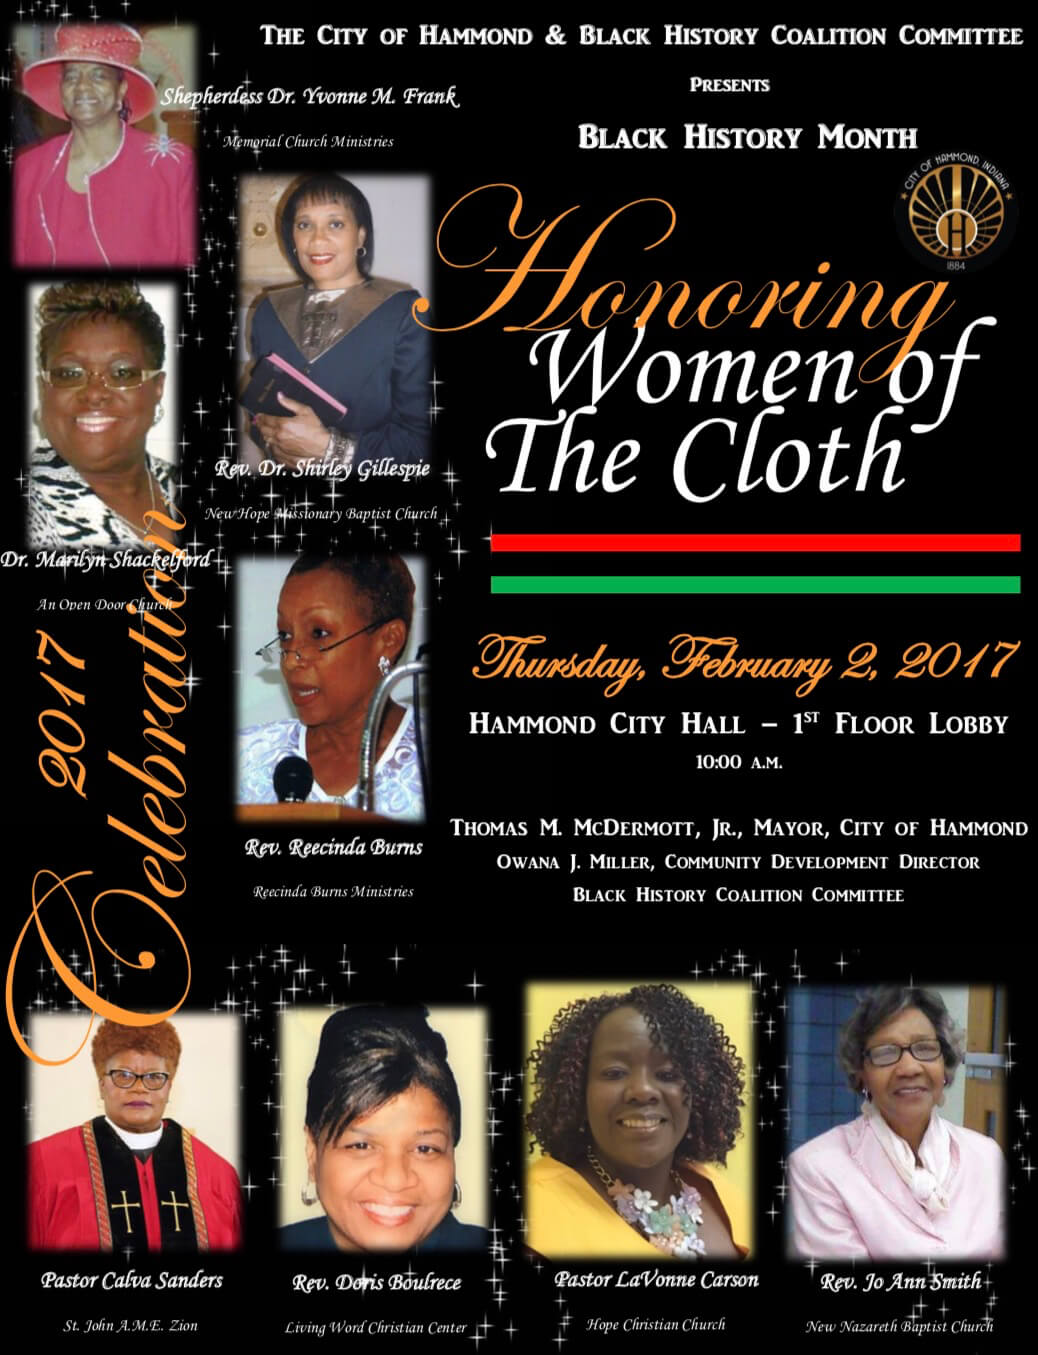 """Mayor Thomas M. McDermott, Jr., the Hammond Human Relations Commission and Department of Community Development will host a Black History Month Celebration on Thursday, February 2, 2017 at Hammond City Hall, 1st floor lobby. The festivities will begin at 10:00 a.m.The theme for this year's event is """"Women of the Cloth"""" Mayor McDermott will present a proclamation honoring the longest married African American couples in the City of Hammond."""